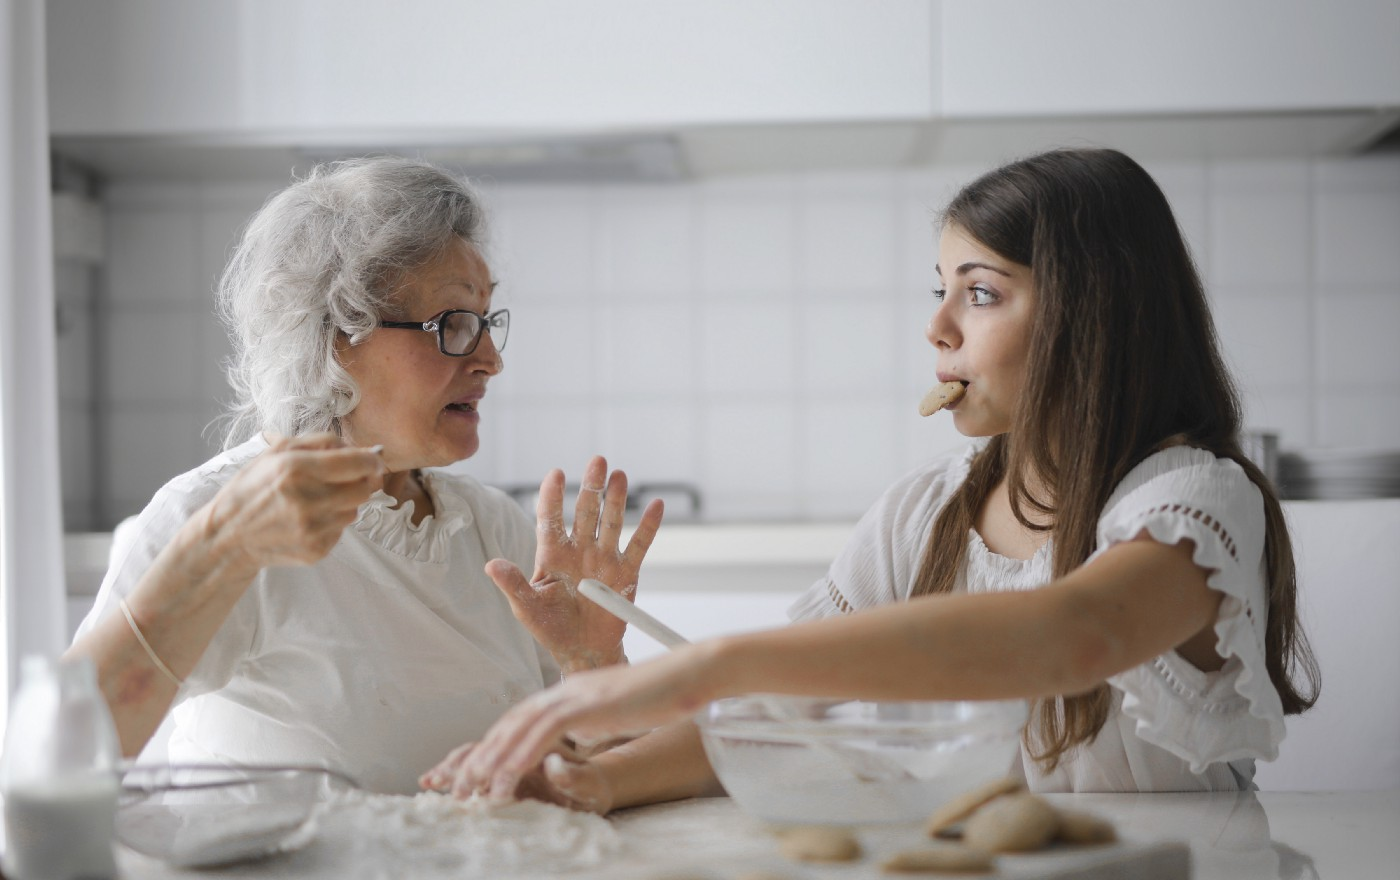 An old and young woman having a conversation in the kitchen